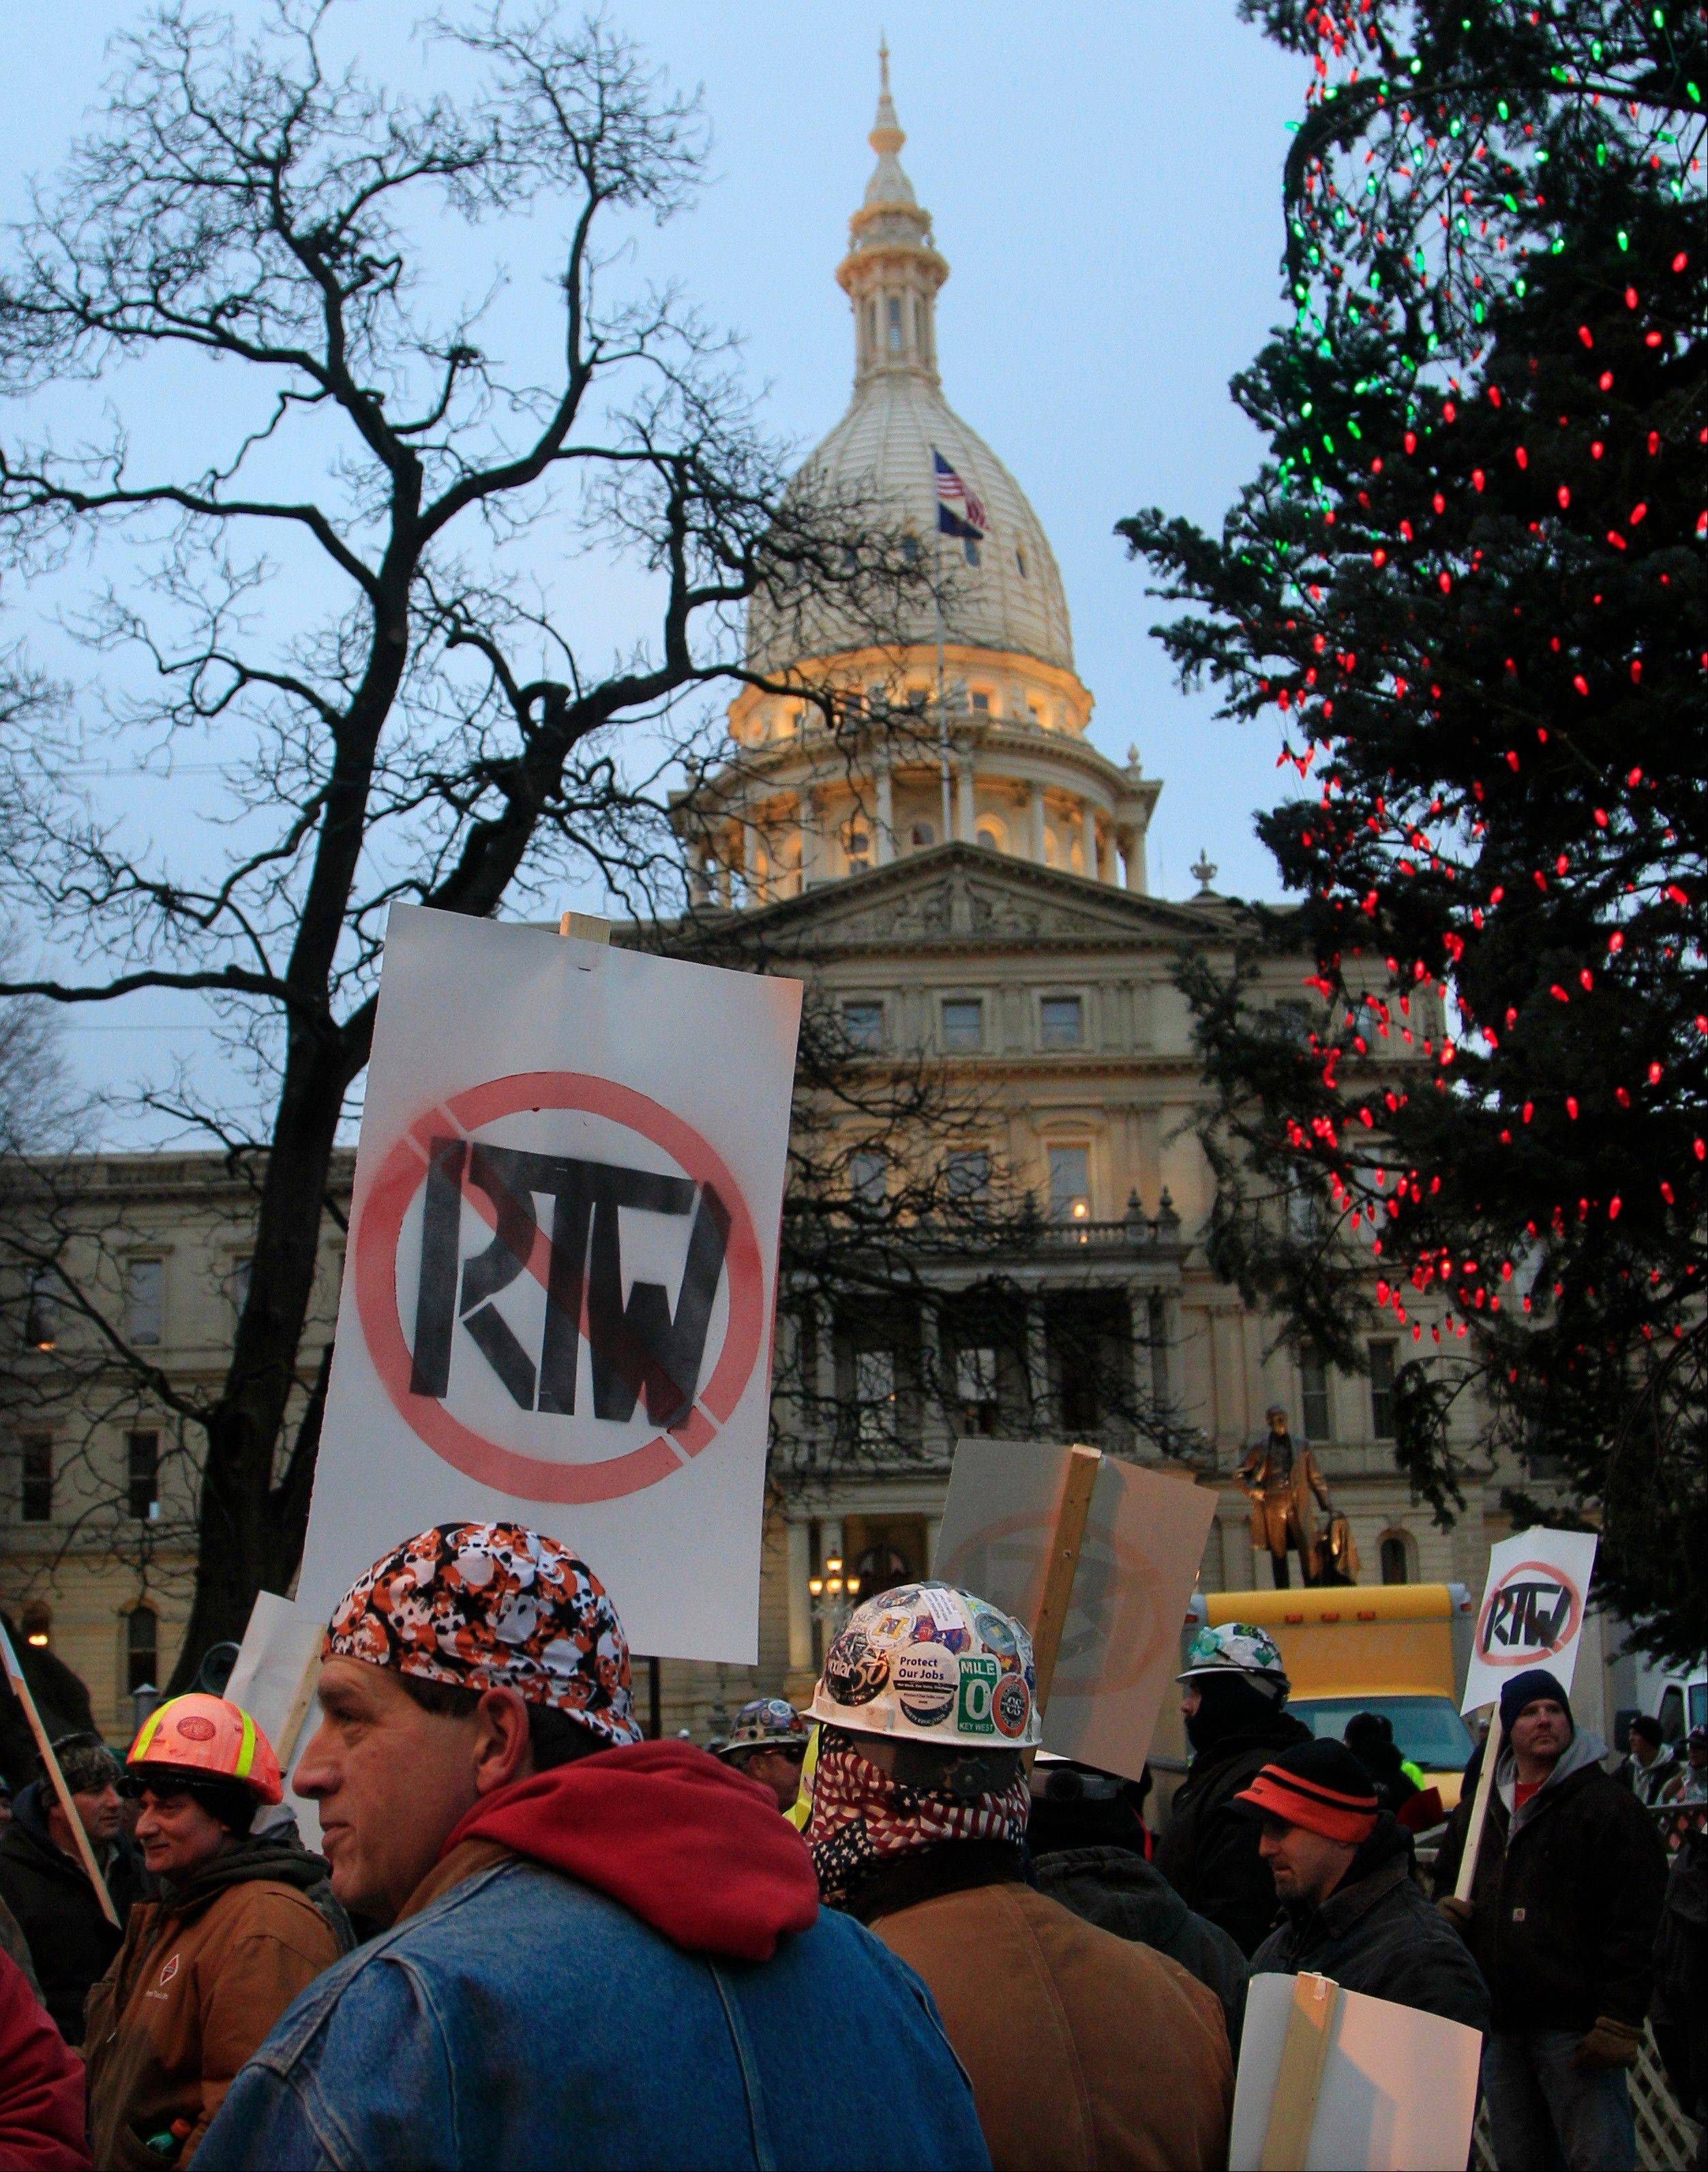 People begin gathering outside on the State Capitol grounds in Lansing, Mich., Tuesday, Dec. 11, 2012 to protest right-to-work legislation that was passed by the state legislature last week. Michigan will become the 24th right-to-work state, banning requirements that nonunion employees pay unions for negotiating contracts and other services.